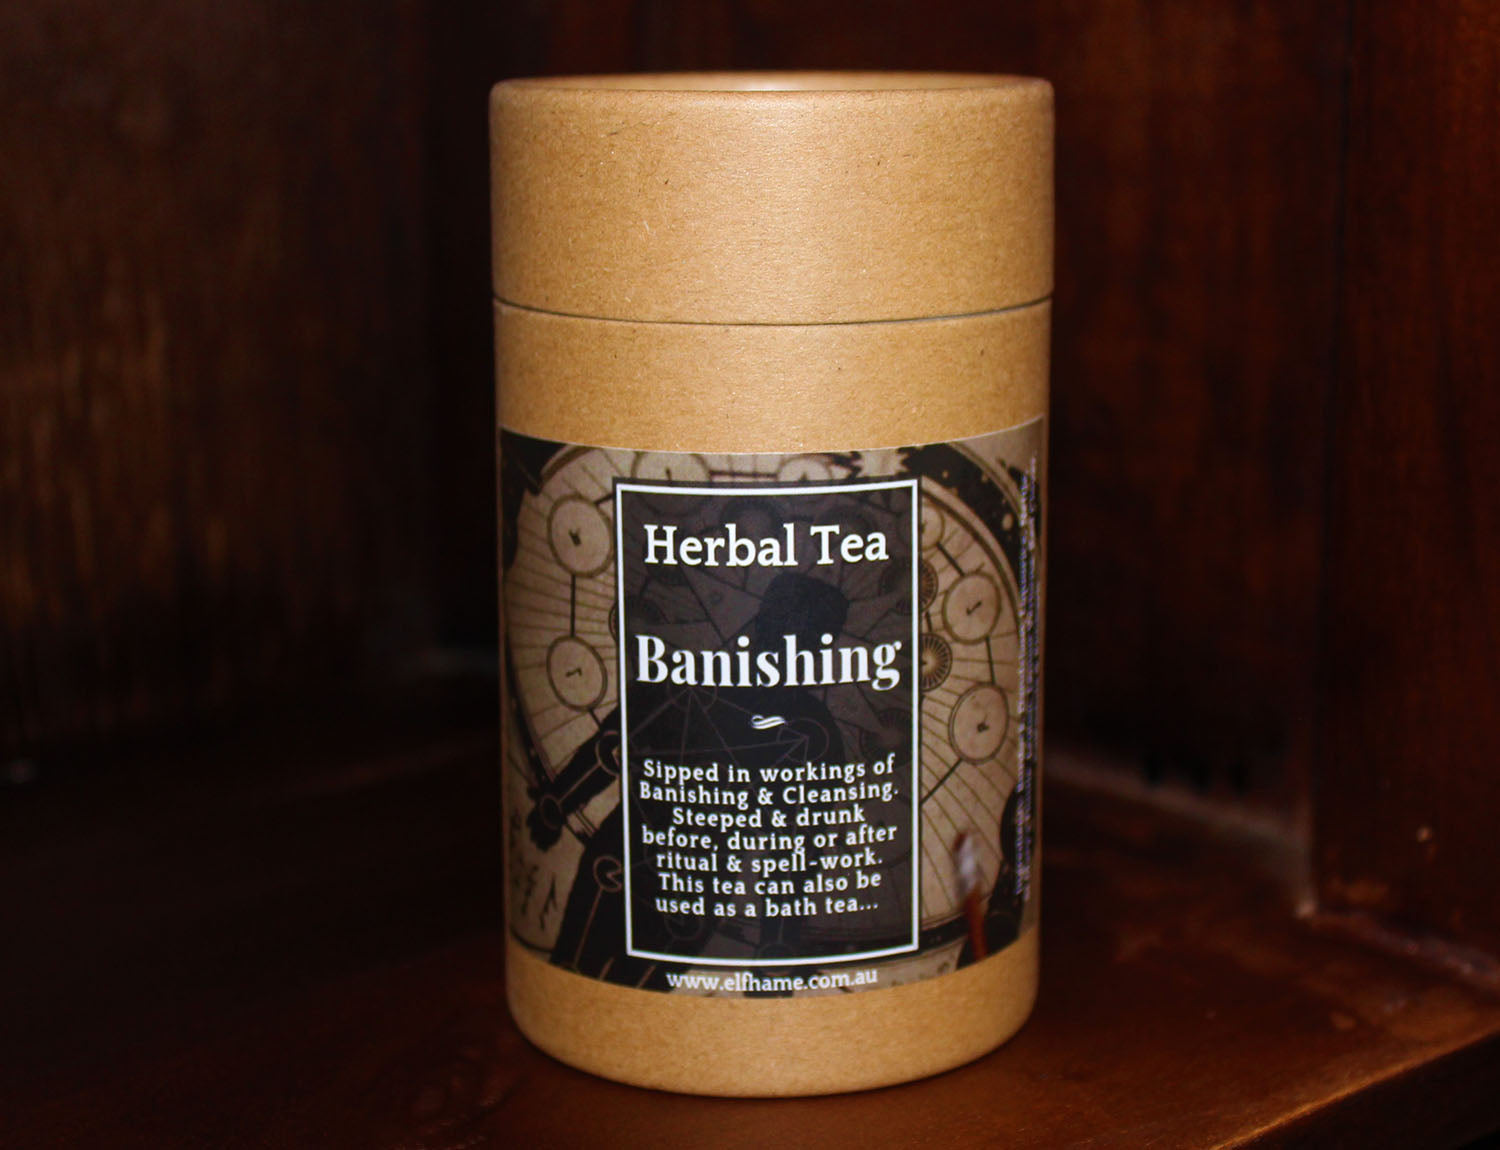 Banishing, Herbal Tea